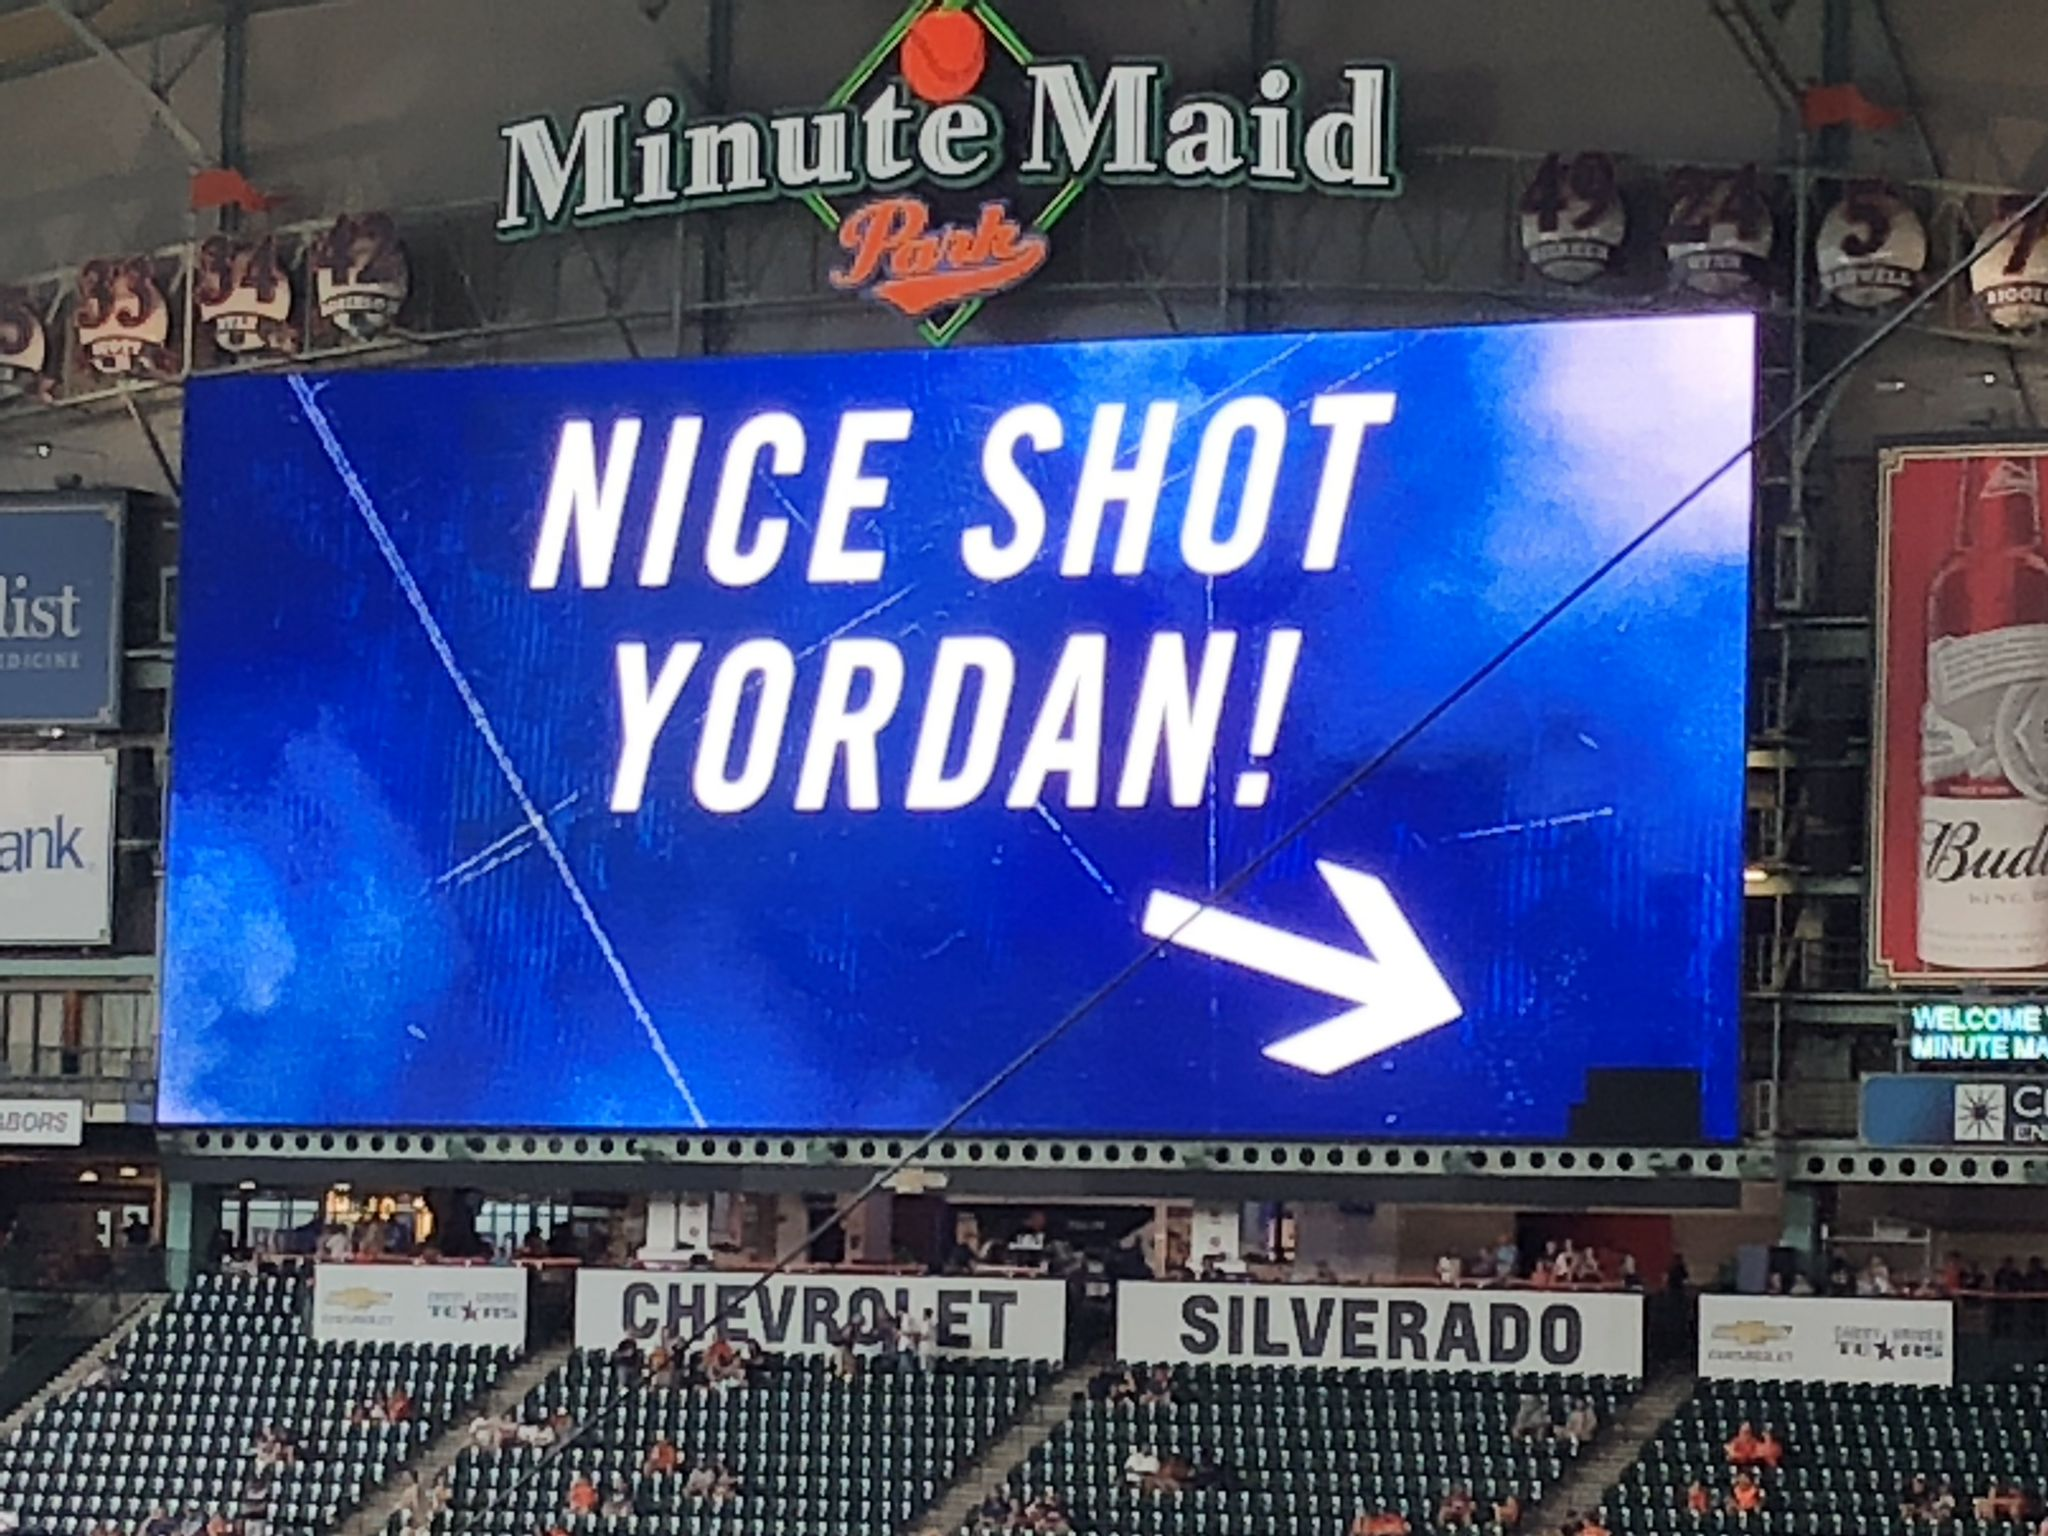 Astros' Yordan Álvarez's batting practice home run damages Jumbotron at Minute Maid Park